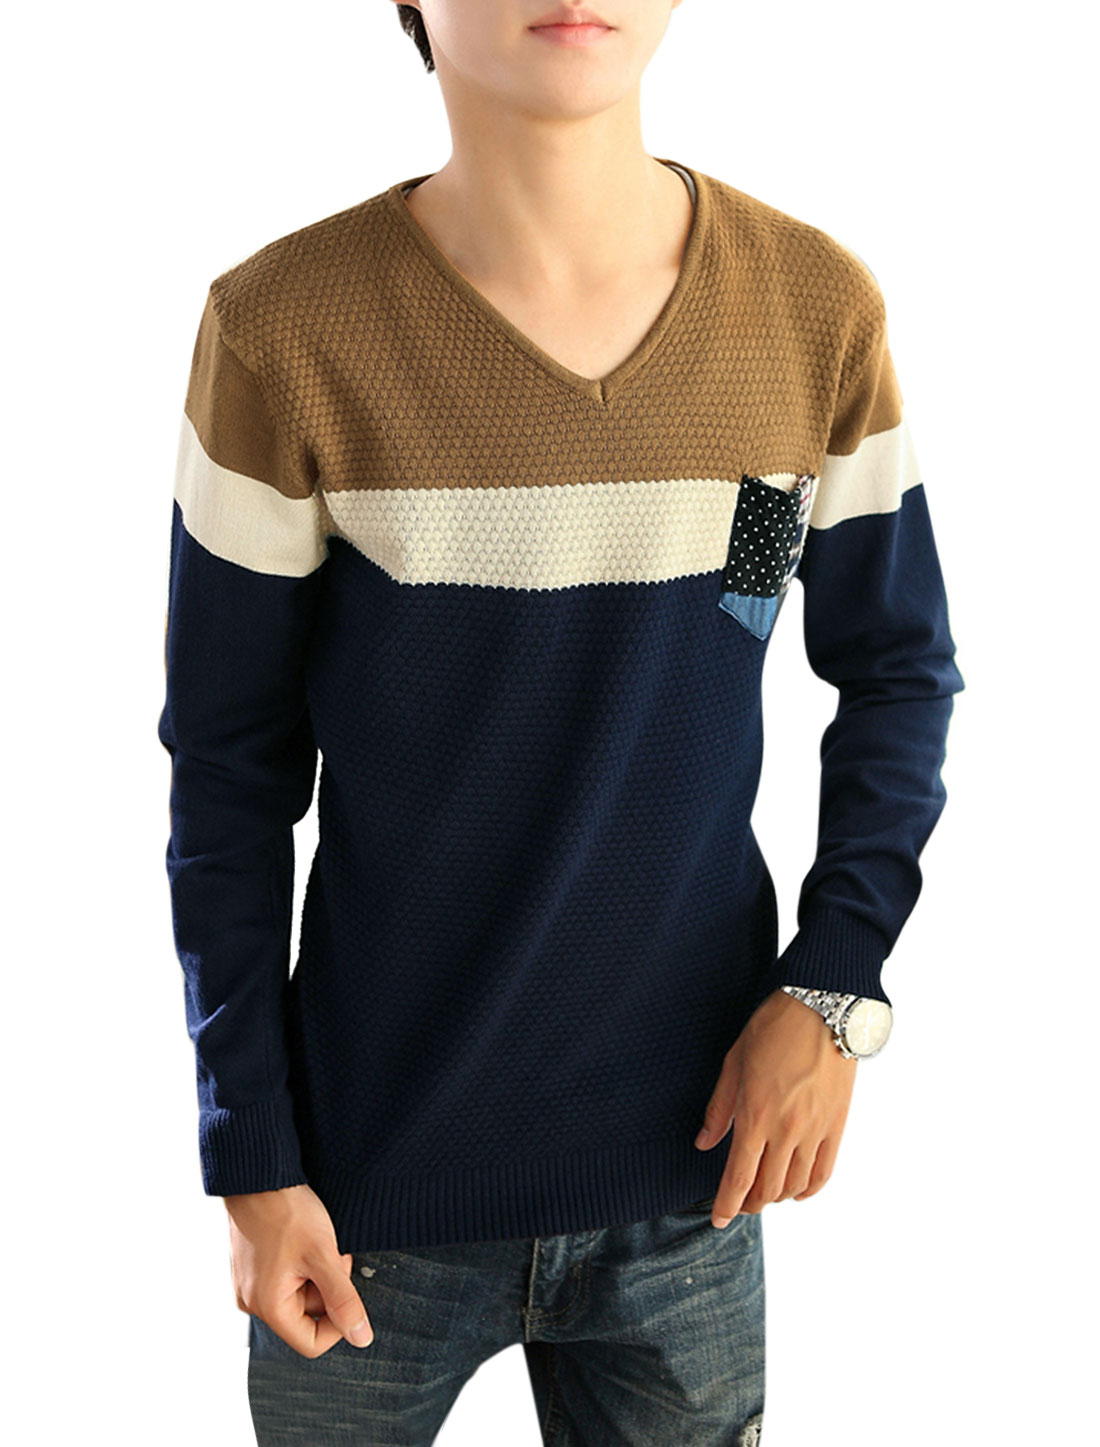 Men Color Block Ribbed Trim Slipover Casual Knit Shirt Beige Camel S